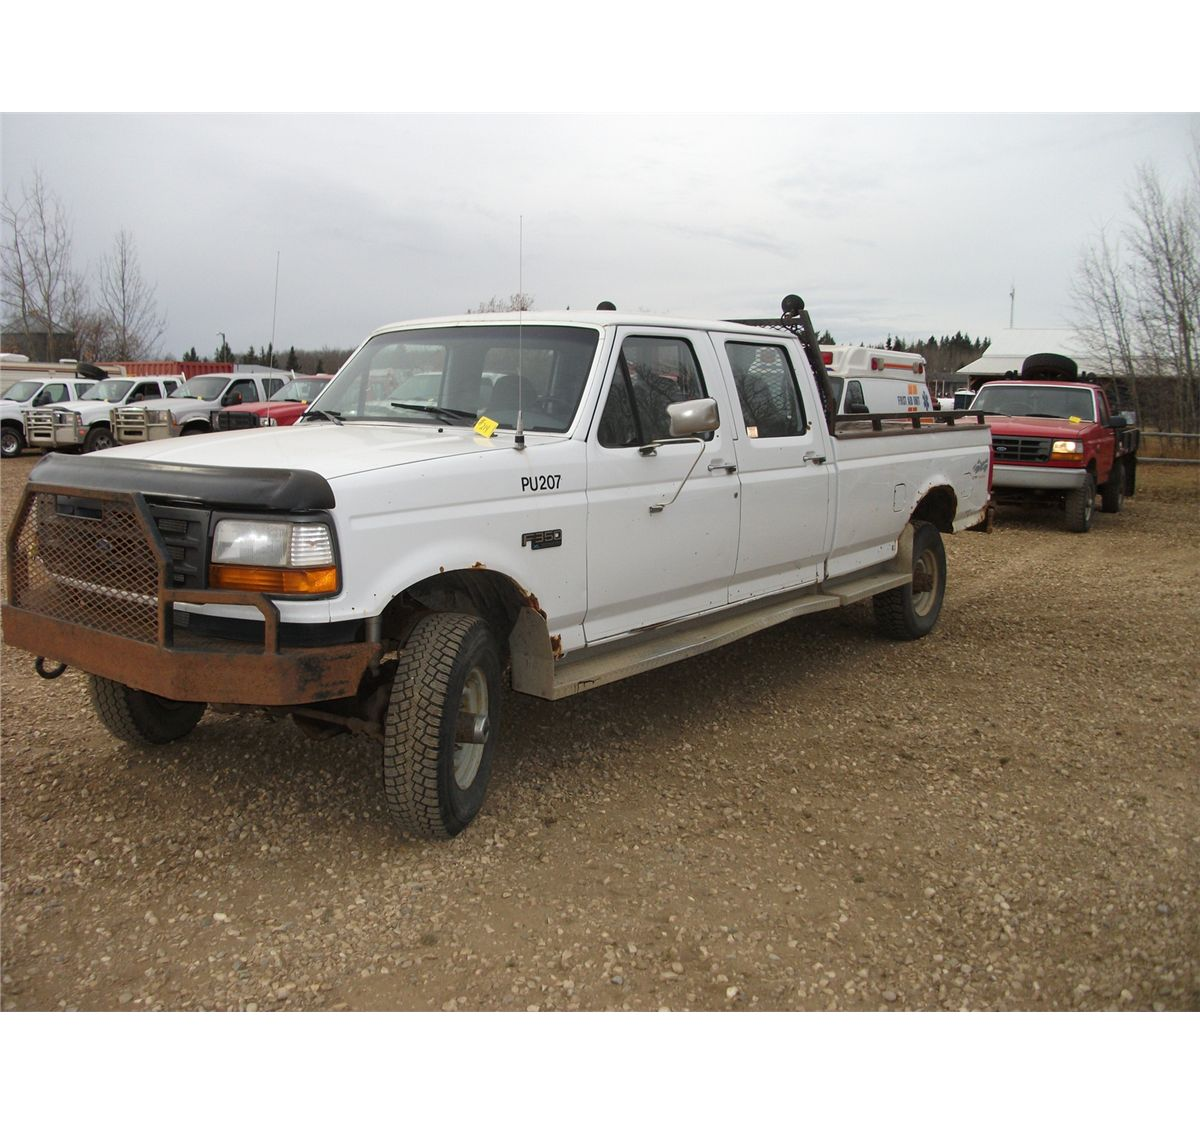 small resolution of image 1 1995 ford f350 xl truck